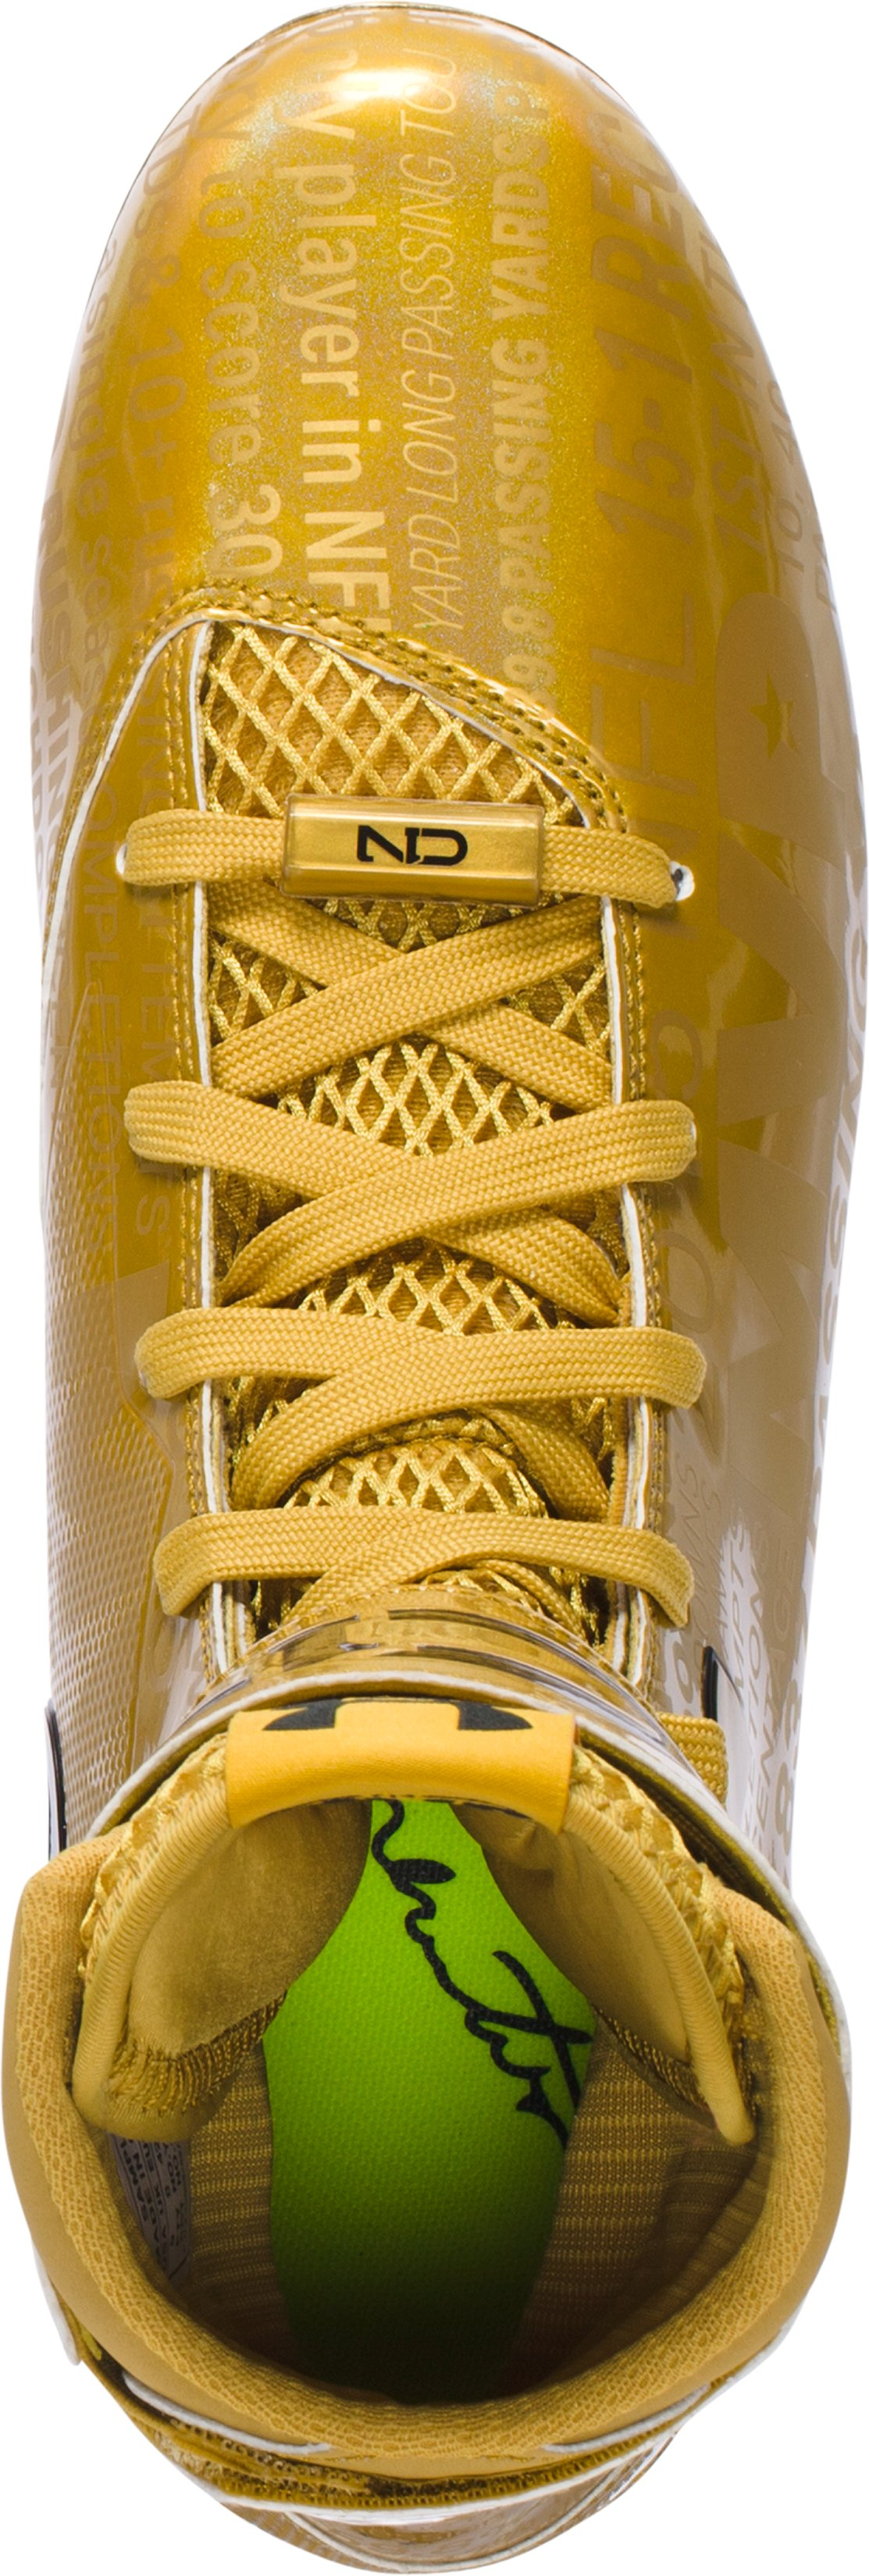 Men's C1N MVP Cleats - Limited Edition, Gold Rush